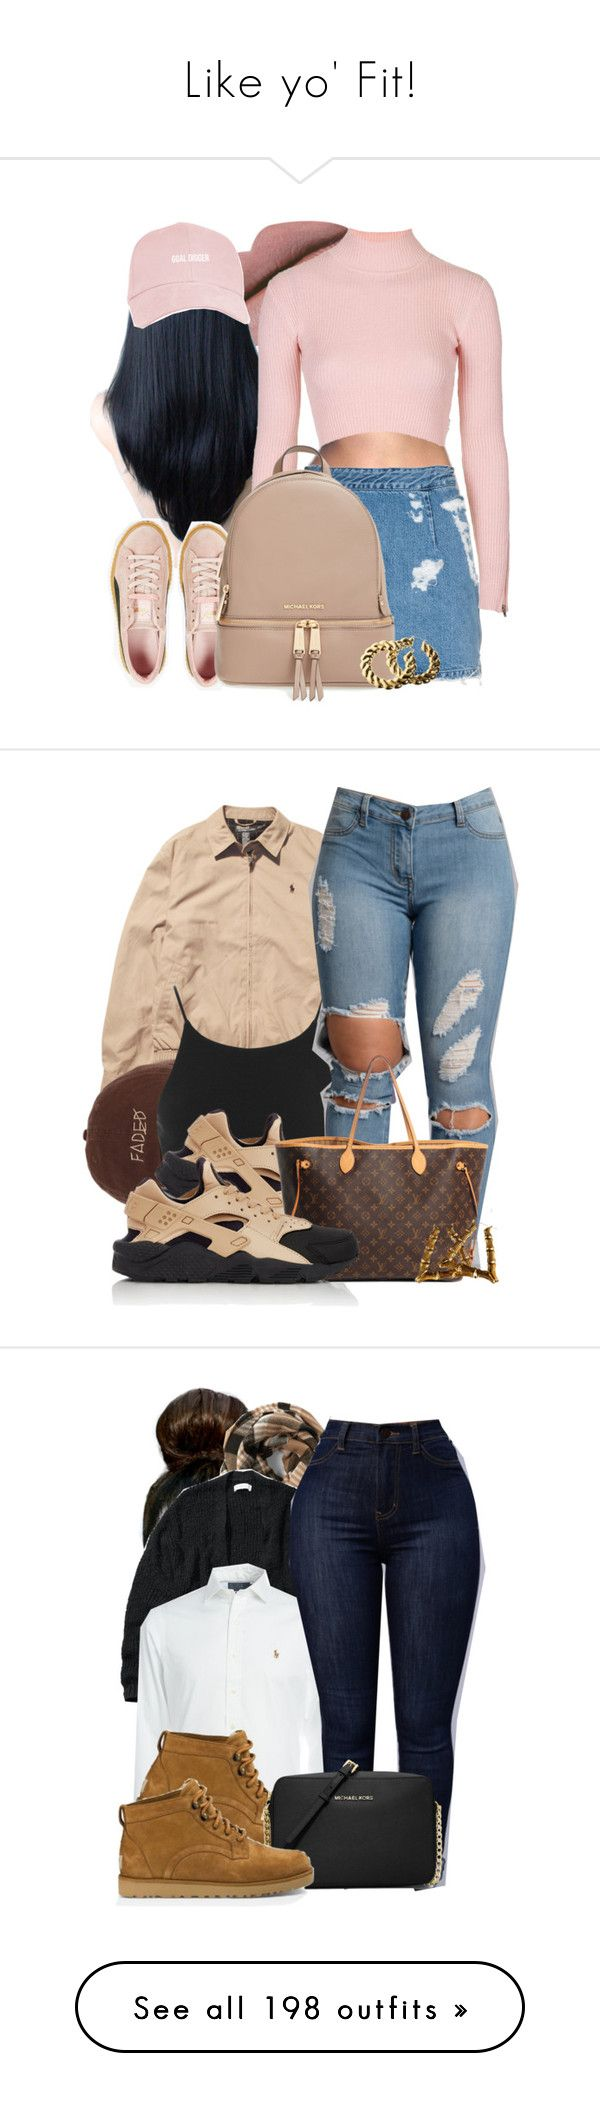 Like yo Fit! by hellacurlz2000 ❤ liked on Polyvore featuring Acne Studios, Puma, Topshop, MICHAEL Michael Kors, HM, Ralph Lauren, Miss Selfridge, NIKE, Louis Vuitton and Abercrombie Fitch